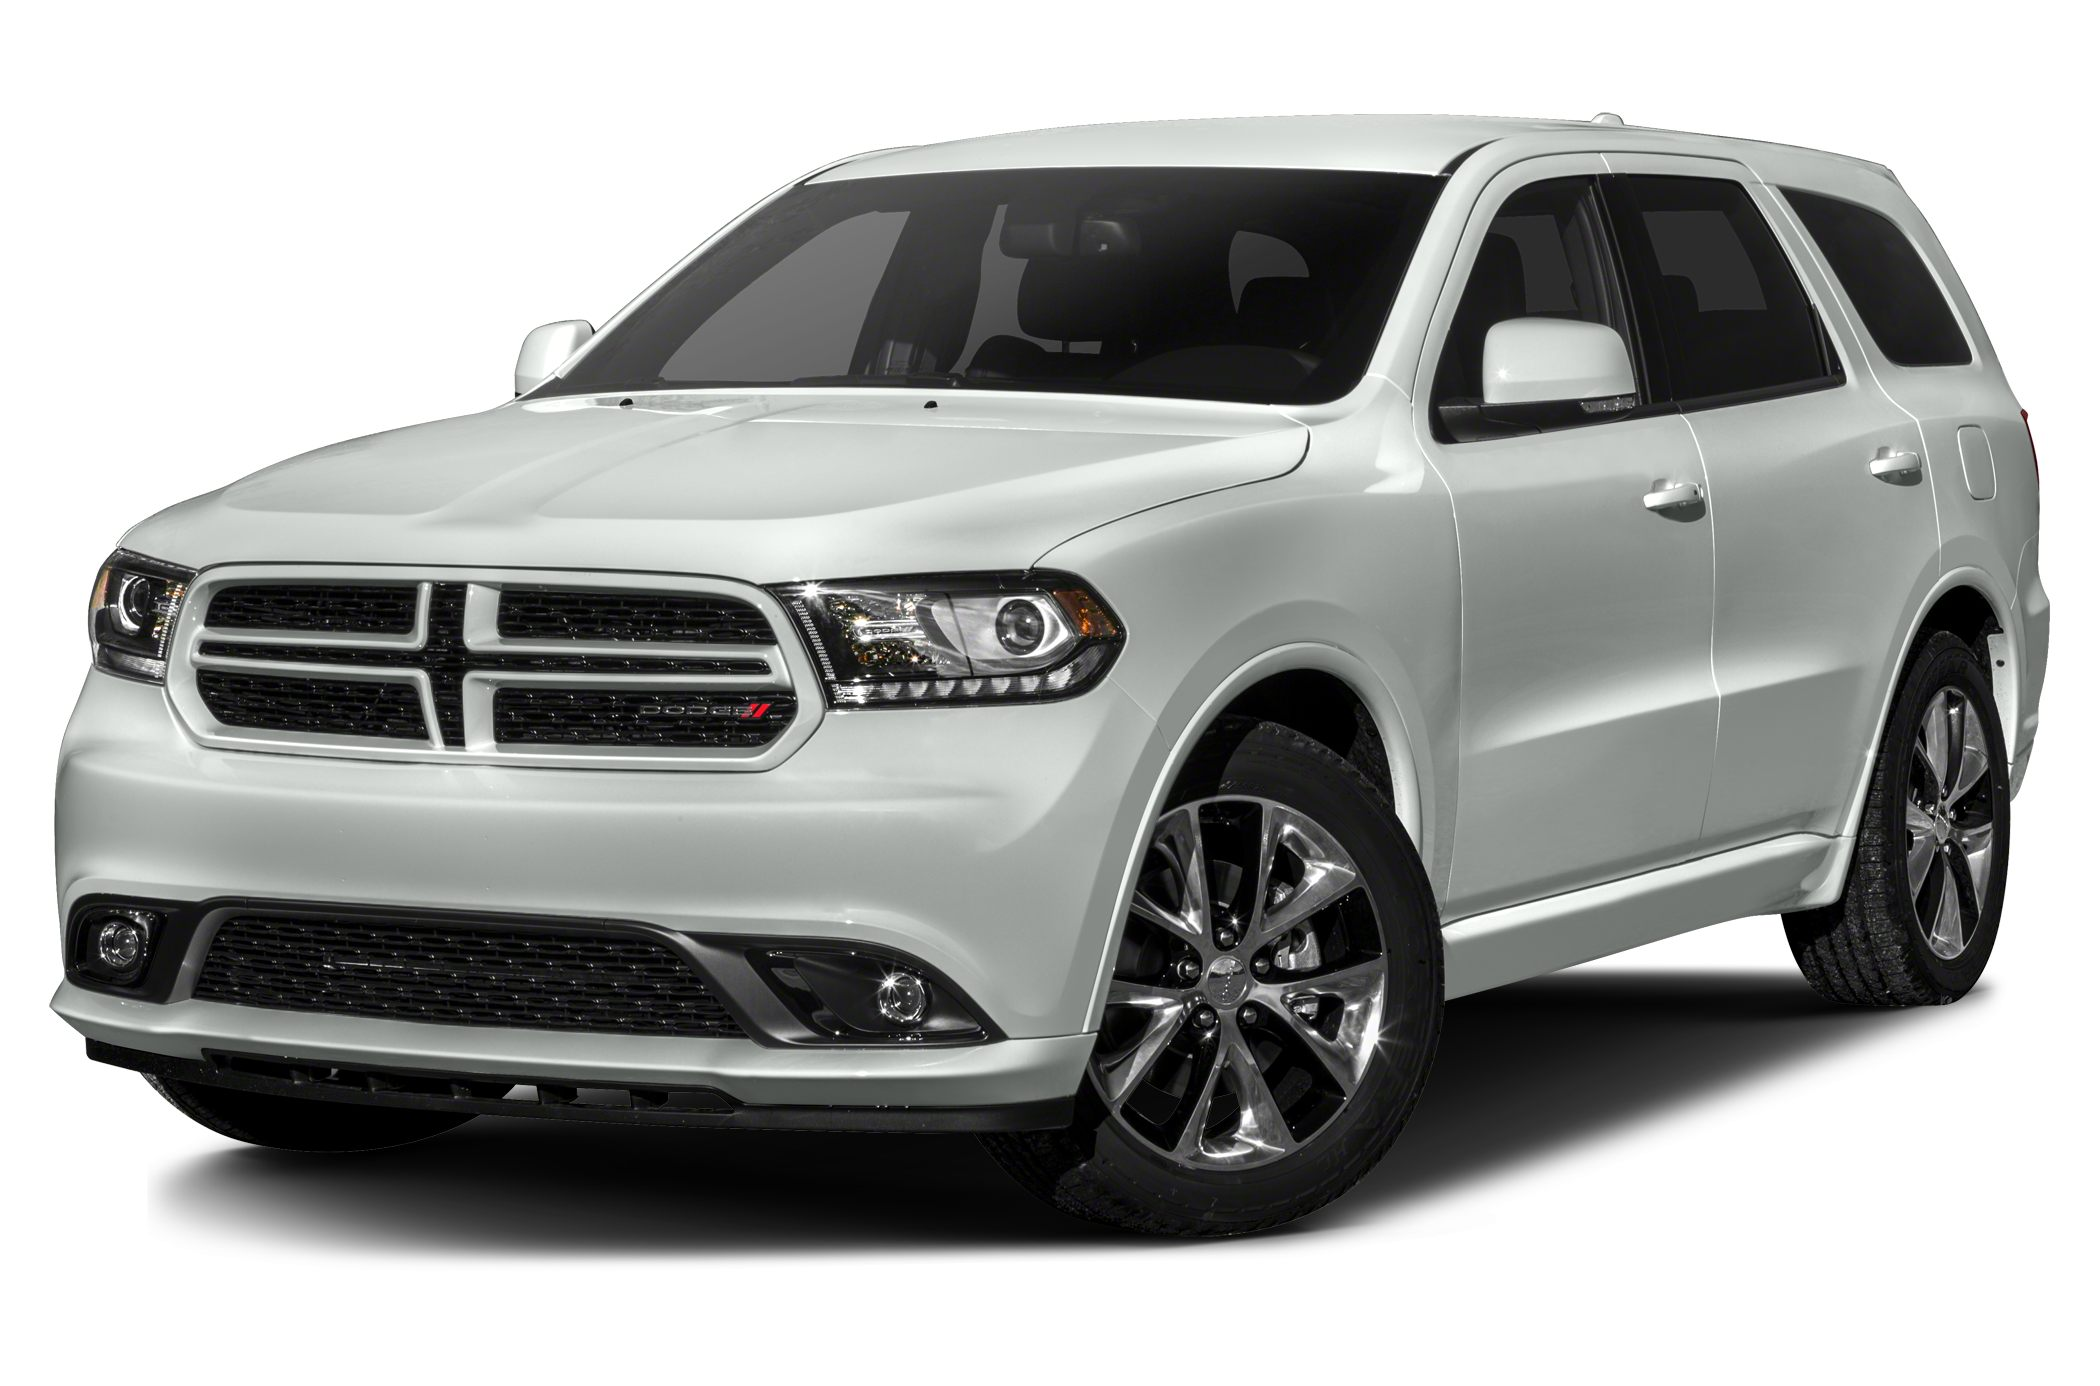 2017 Dodge Durango RT New Inventory Great MPG 22 MPG Hwy Oh yeah hunting for for a wonderfu